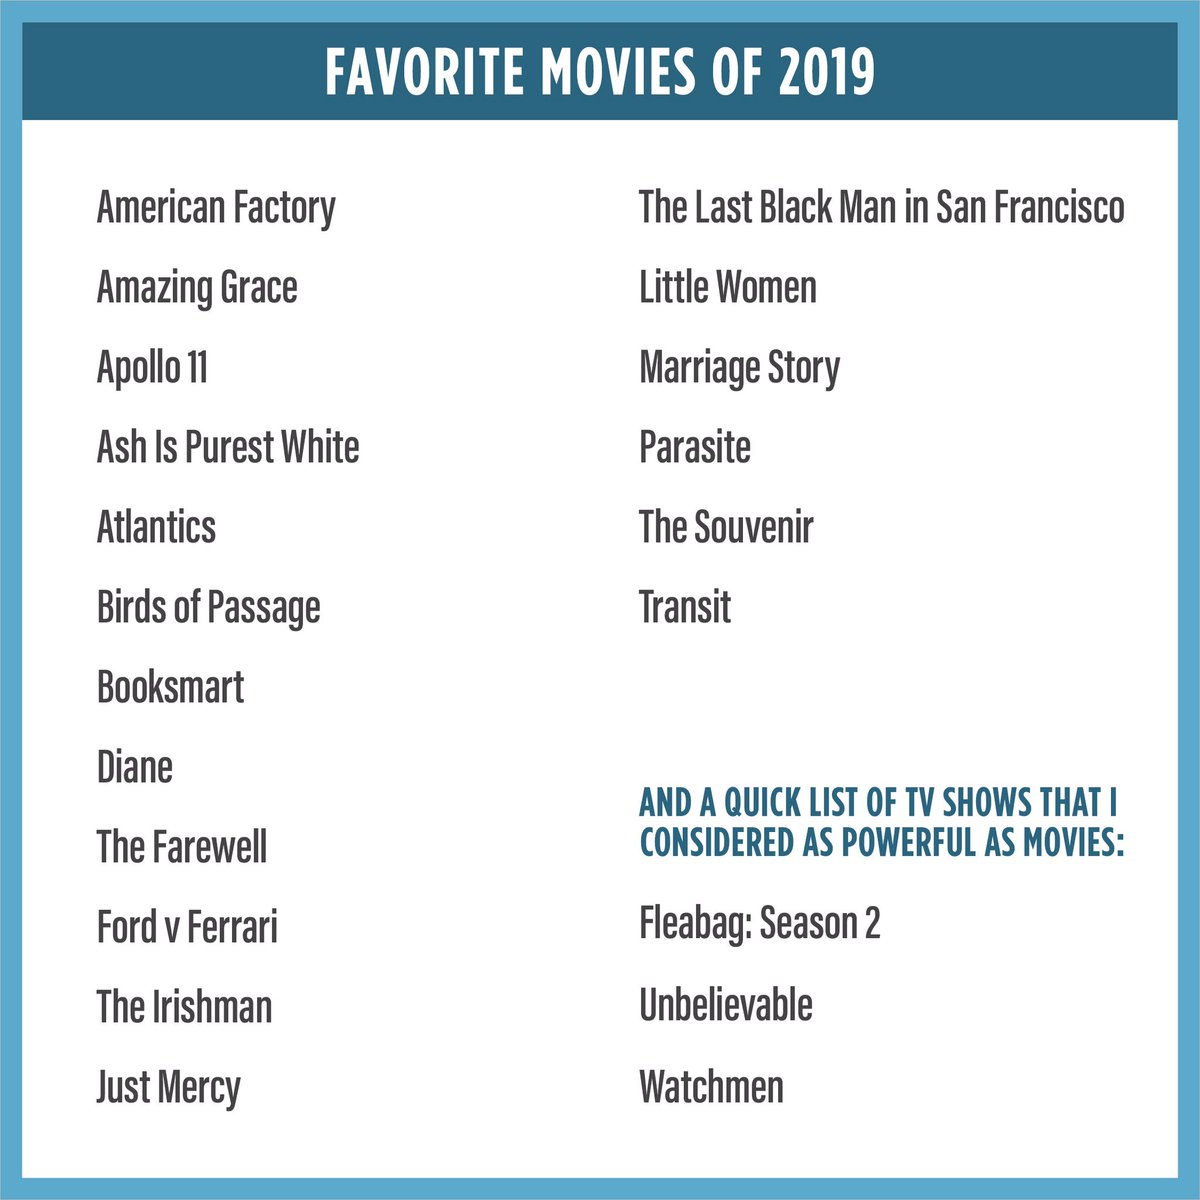 Next up are my favorite movies and TV shows of 2019. Of course, there's also American Factory, a film from our own production company, Higher Ground, that was recently shortlisted for an Oscar. Here's the full list: